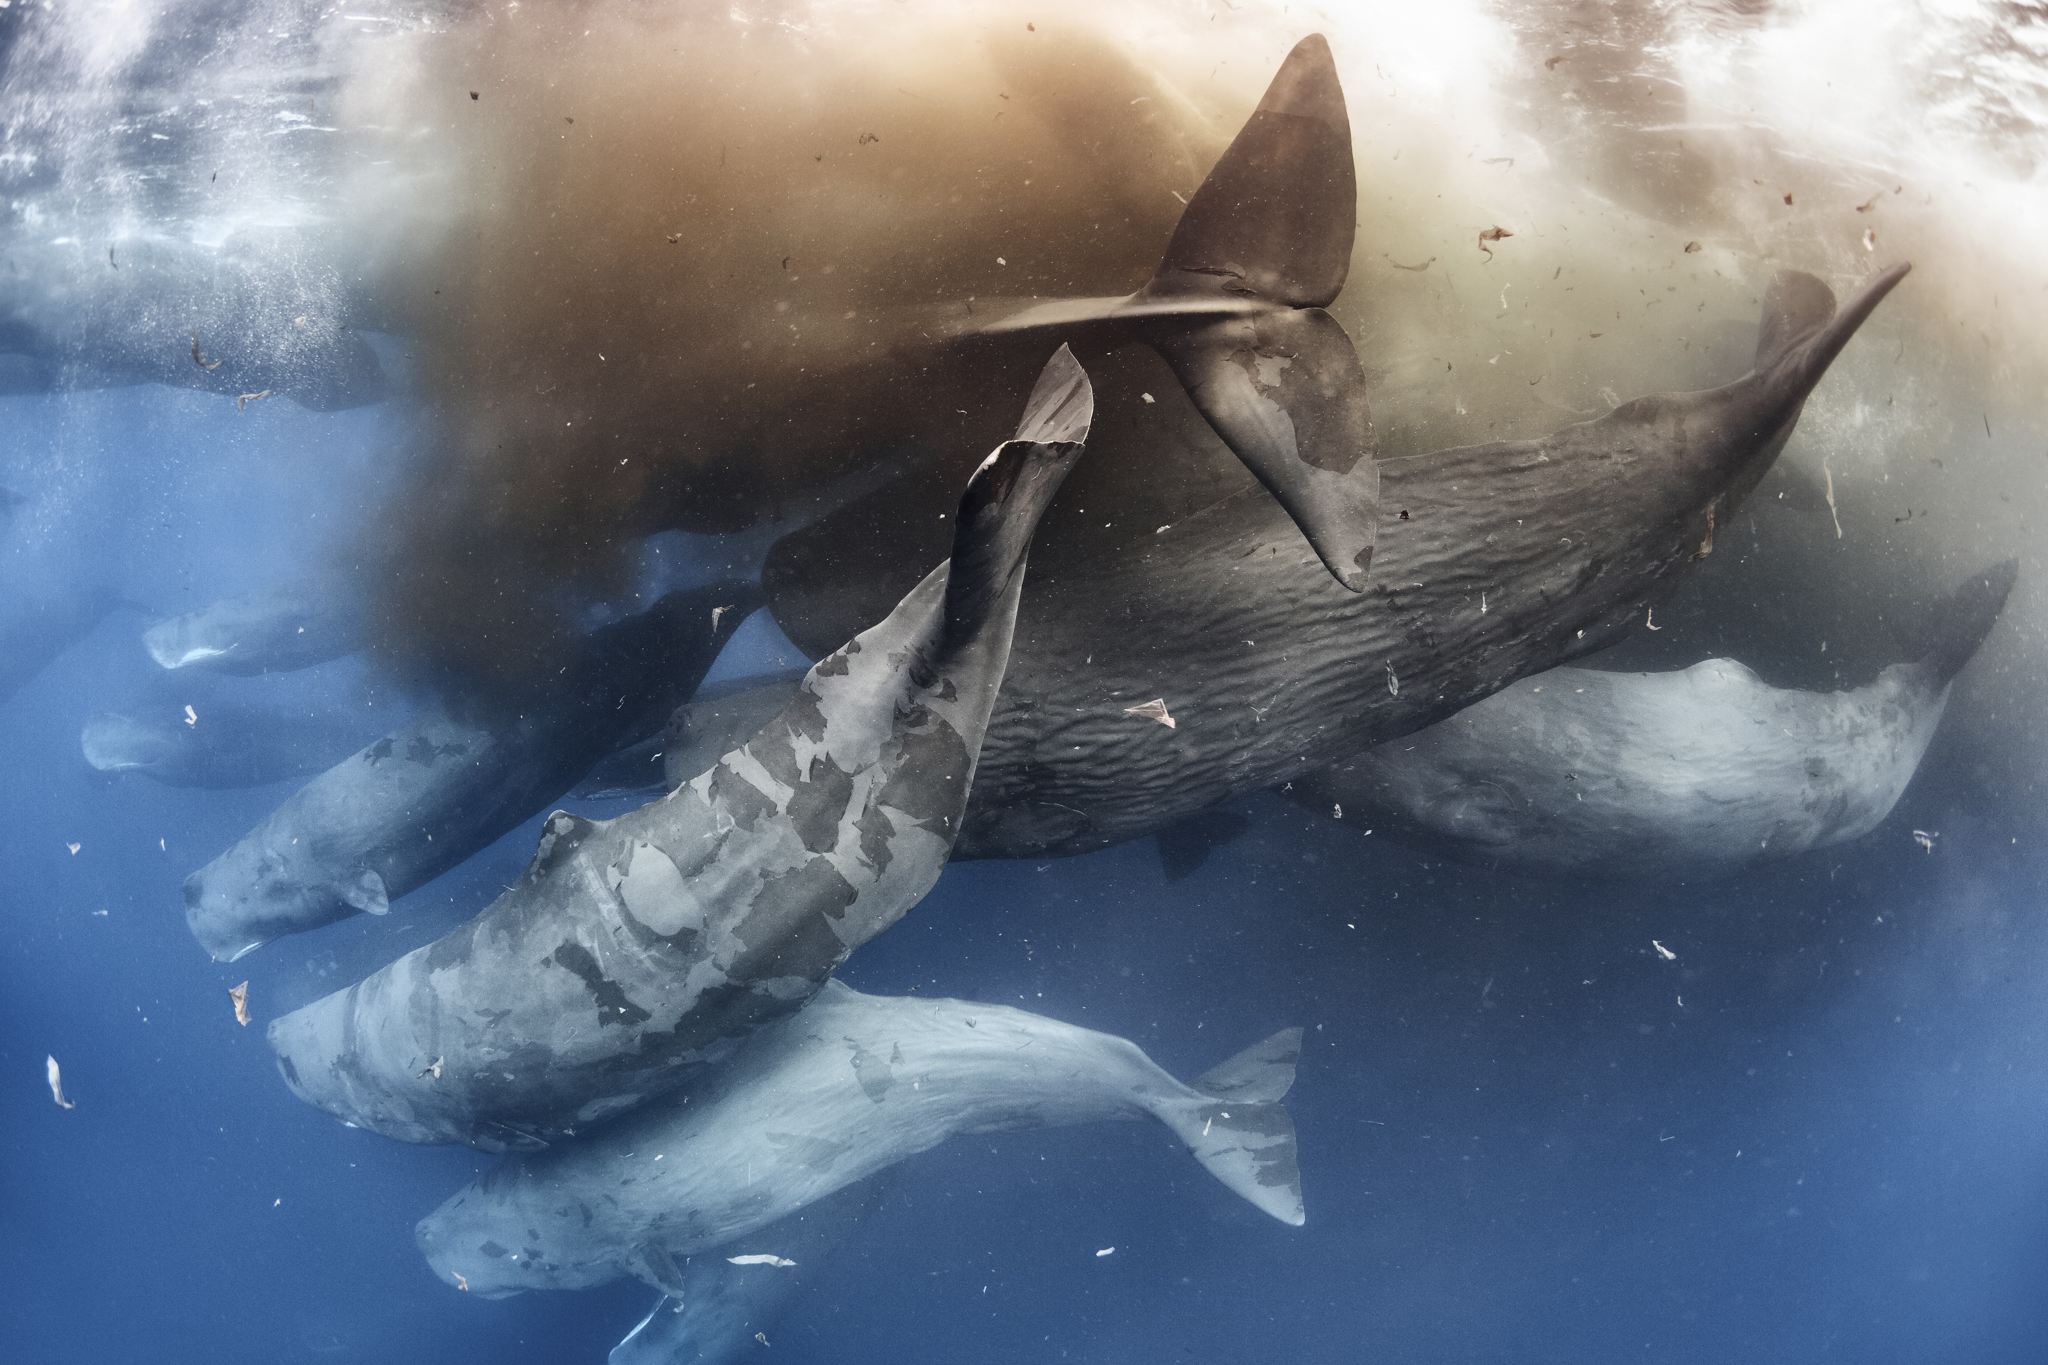 Sperm whales (<em>Physeter macrocephalus</em>) defecating while engaged in a massive social gathering. Defecation like this is common in sperm whale social gatherings, as is the shedding of skin, which further clouds the water in this shot.